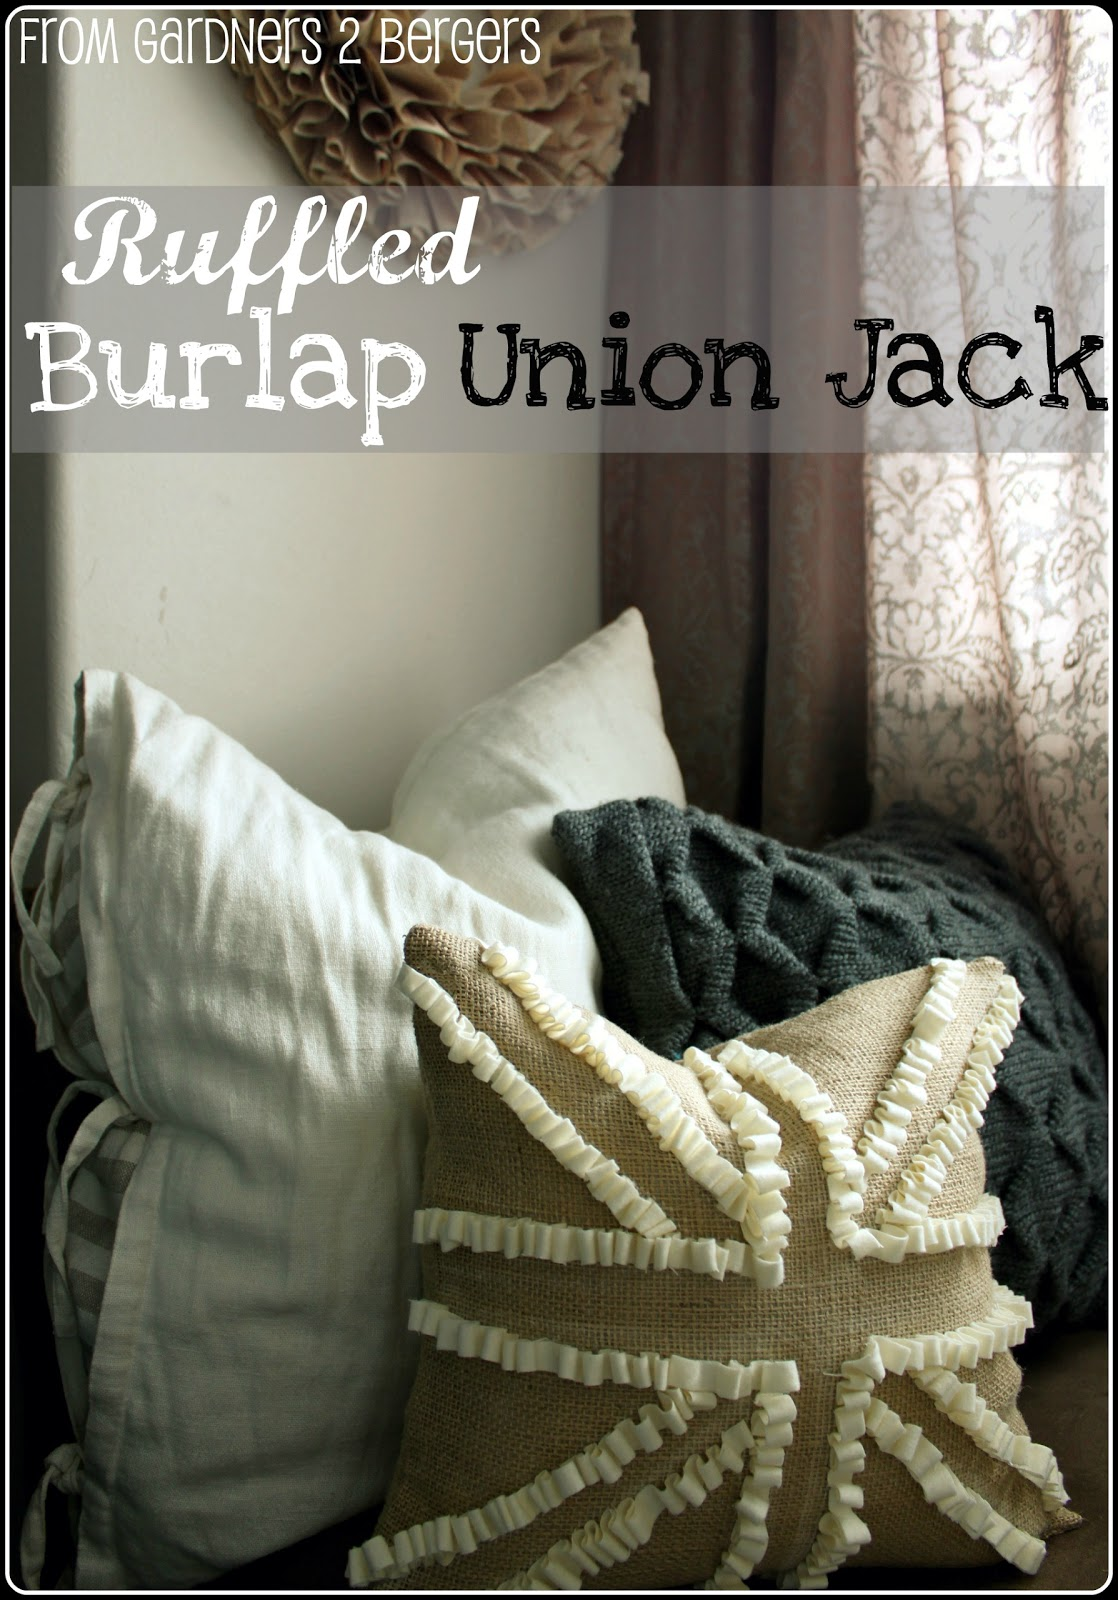 Burlap-and-Ruffle-Union-Jack-Pillow-fg2b